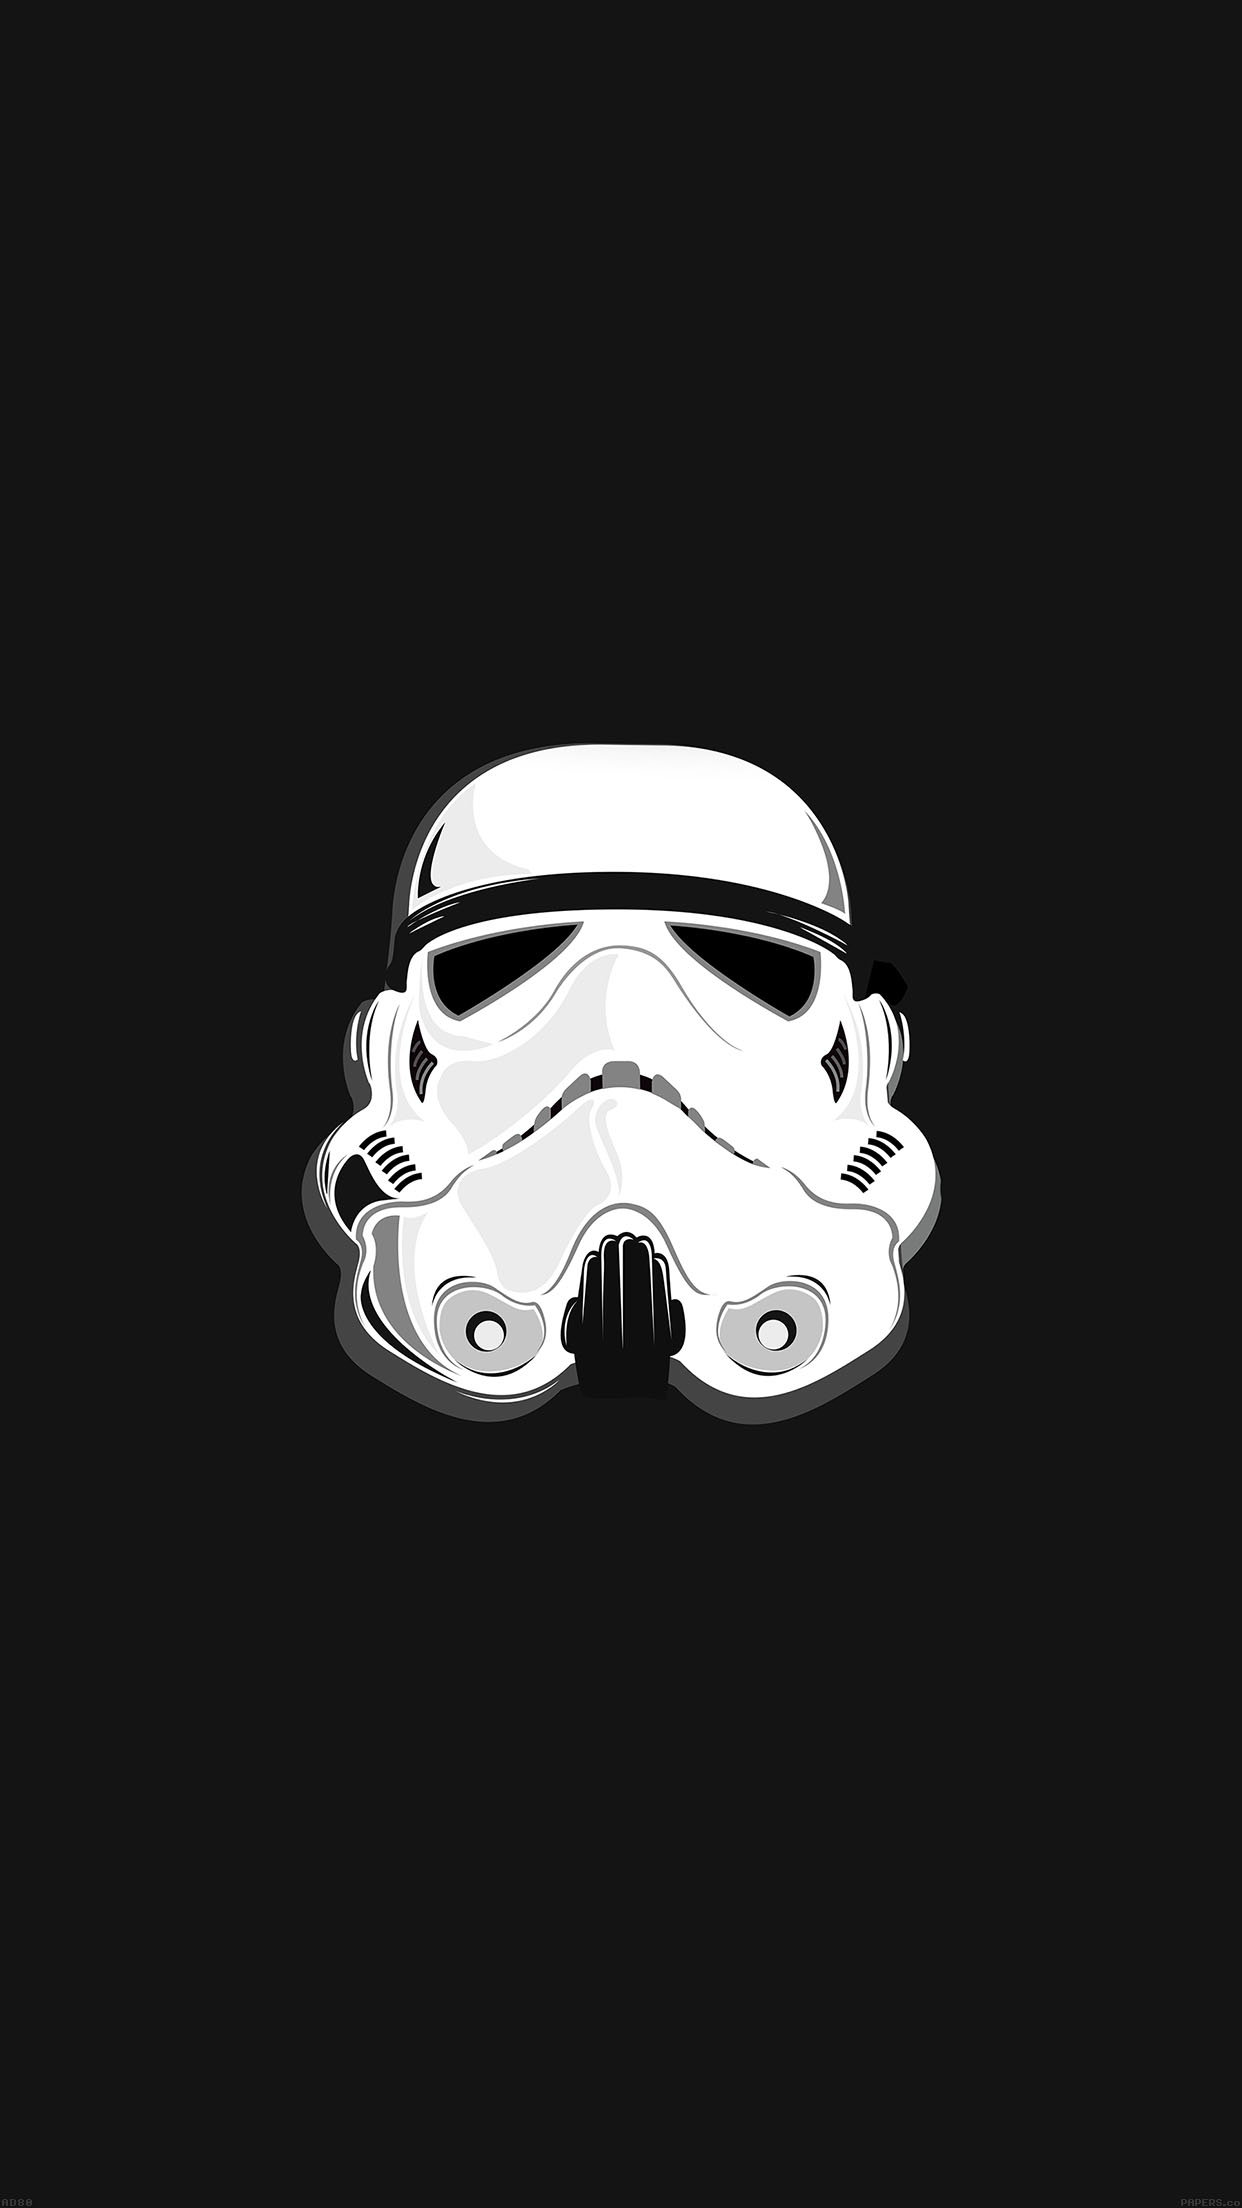 storm trooper starwars illust 34 iphone6 plus wallpaperjpg 1242x2208